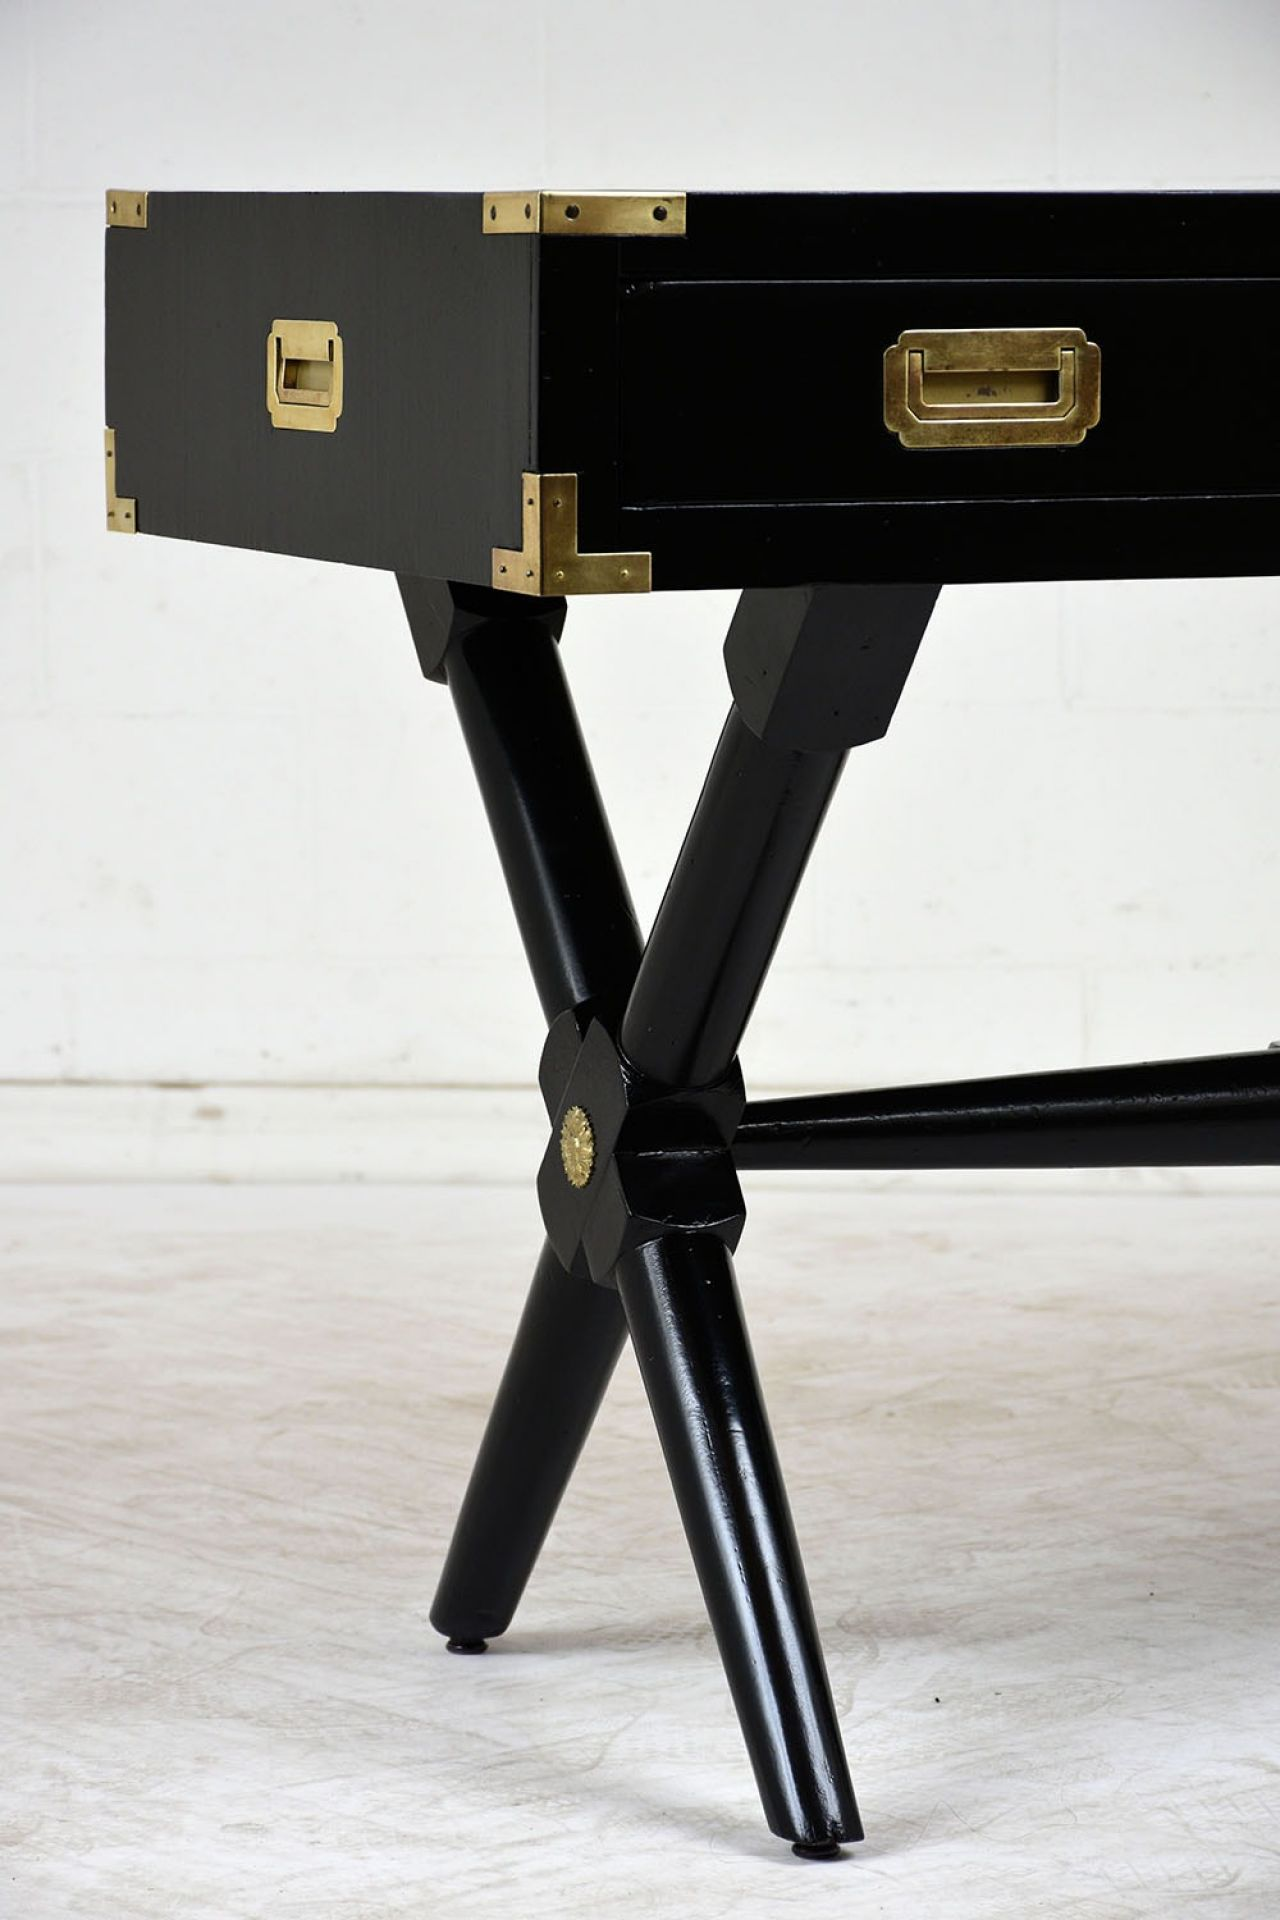 Early 20th Century Campaign-style Desk